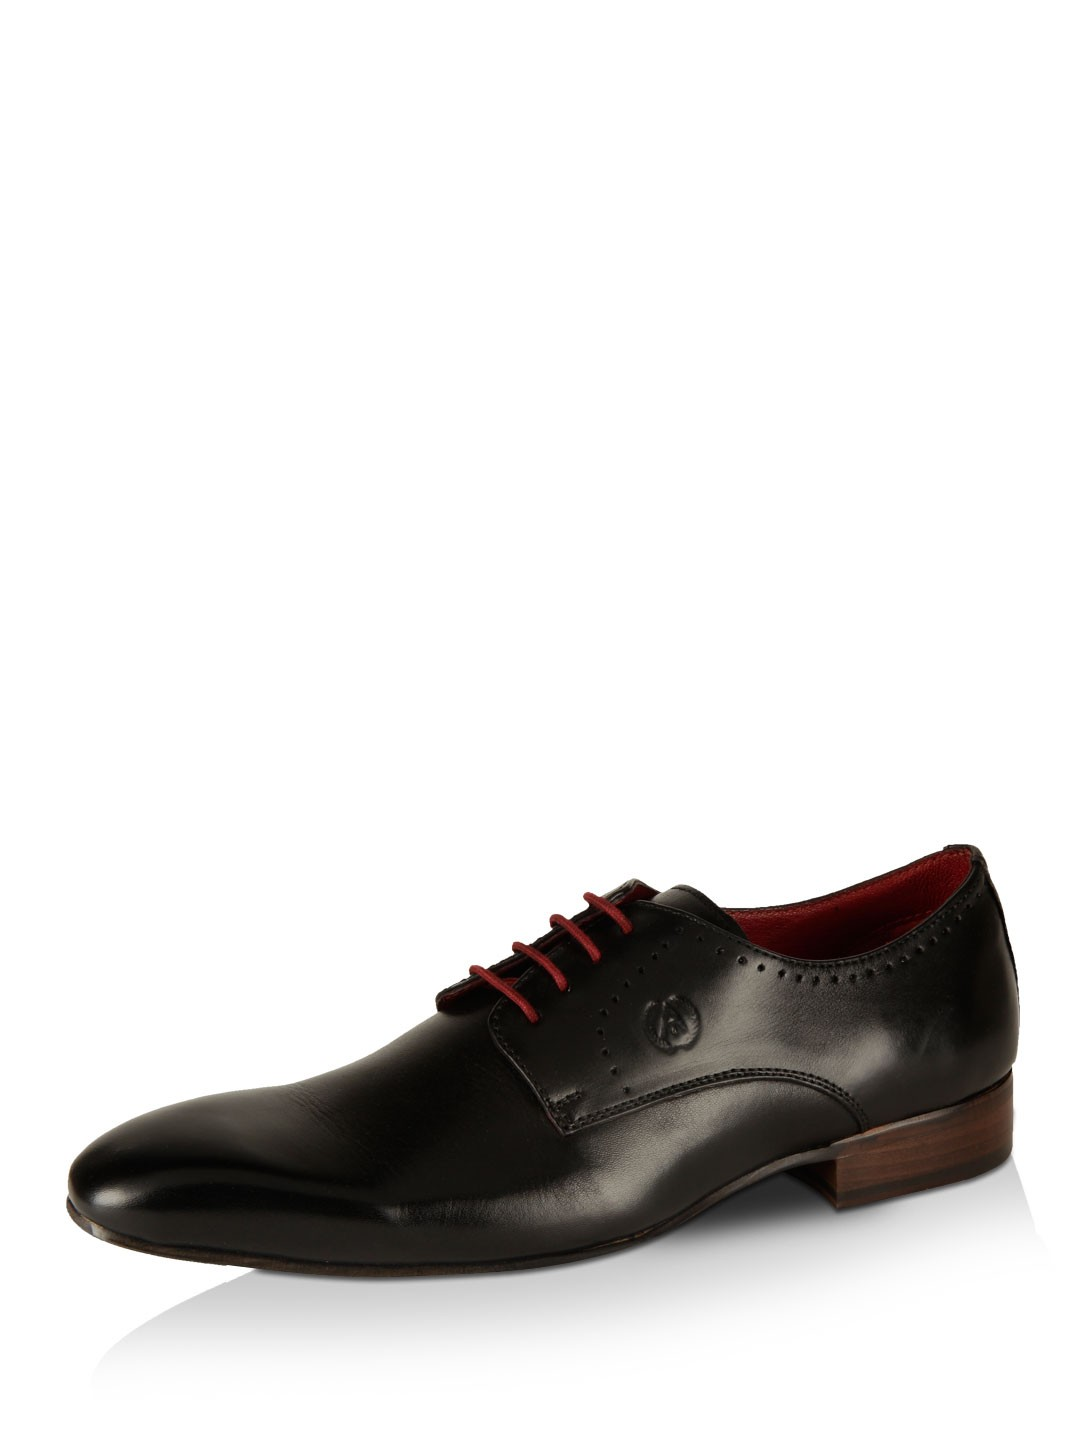 Buy Best Formal Shoes Online India